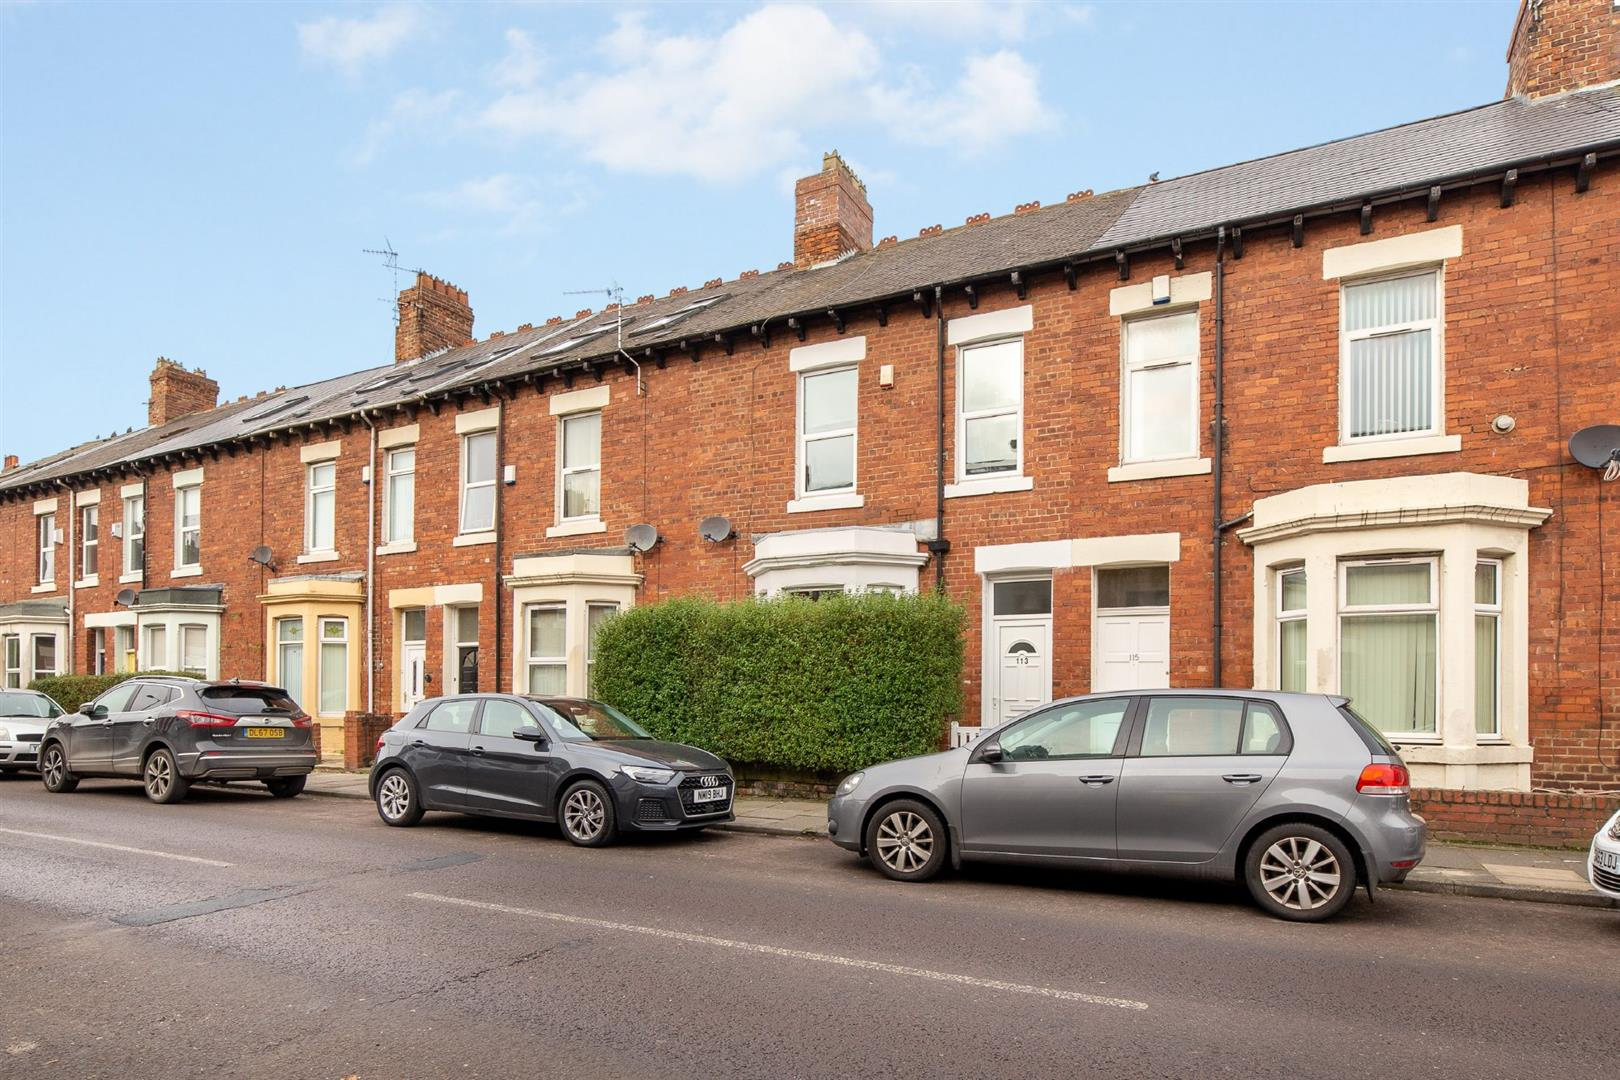 6 bed terraced house for sale in Newcastle Upon Tyne, NE6 5HS  - Property Image 1